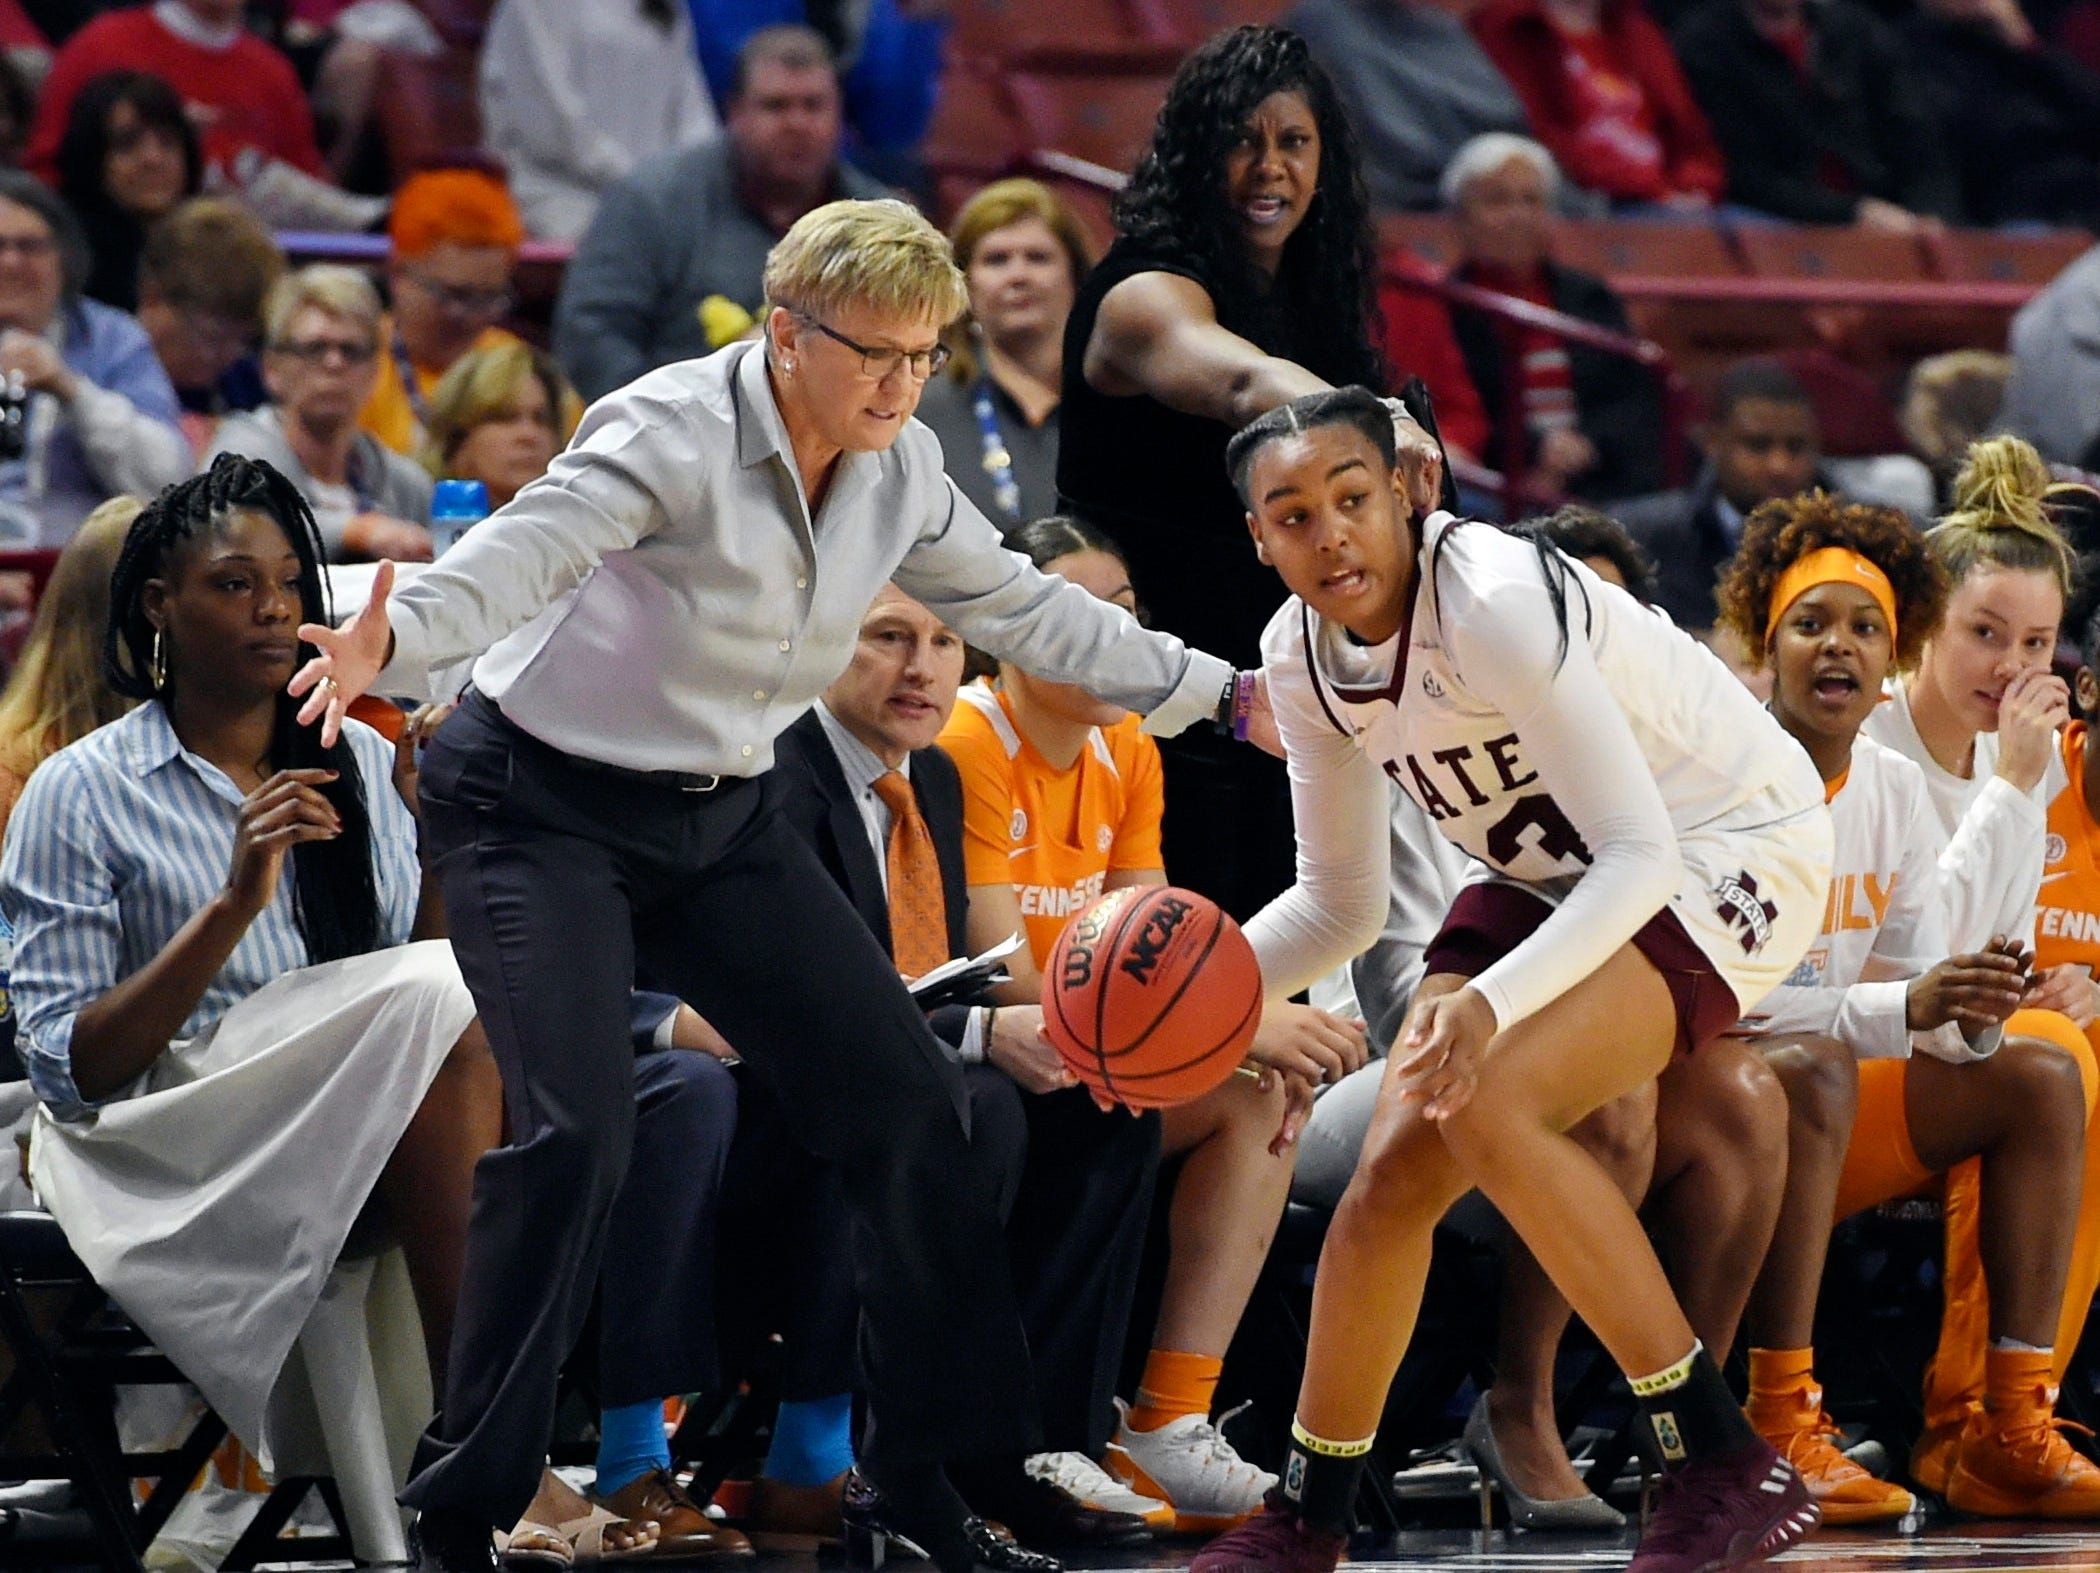 Mississippi State's Bre'Amber Scott recovers a loose ball in front of Tennessee's bench and coach Holly Warlick during the first half of an NCAA college basketball game at the Southeastern Conference women's tournament, Friday, March 8, 2019, in Greenville, S.C.